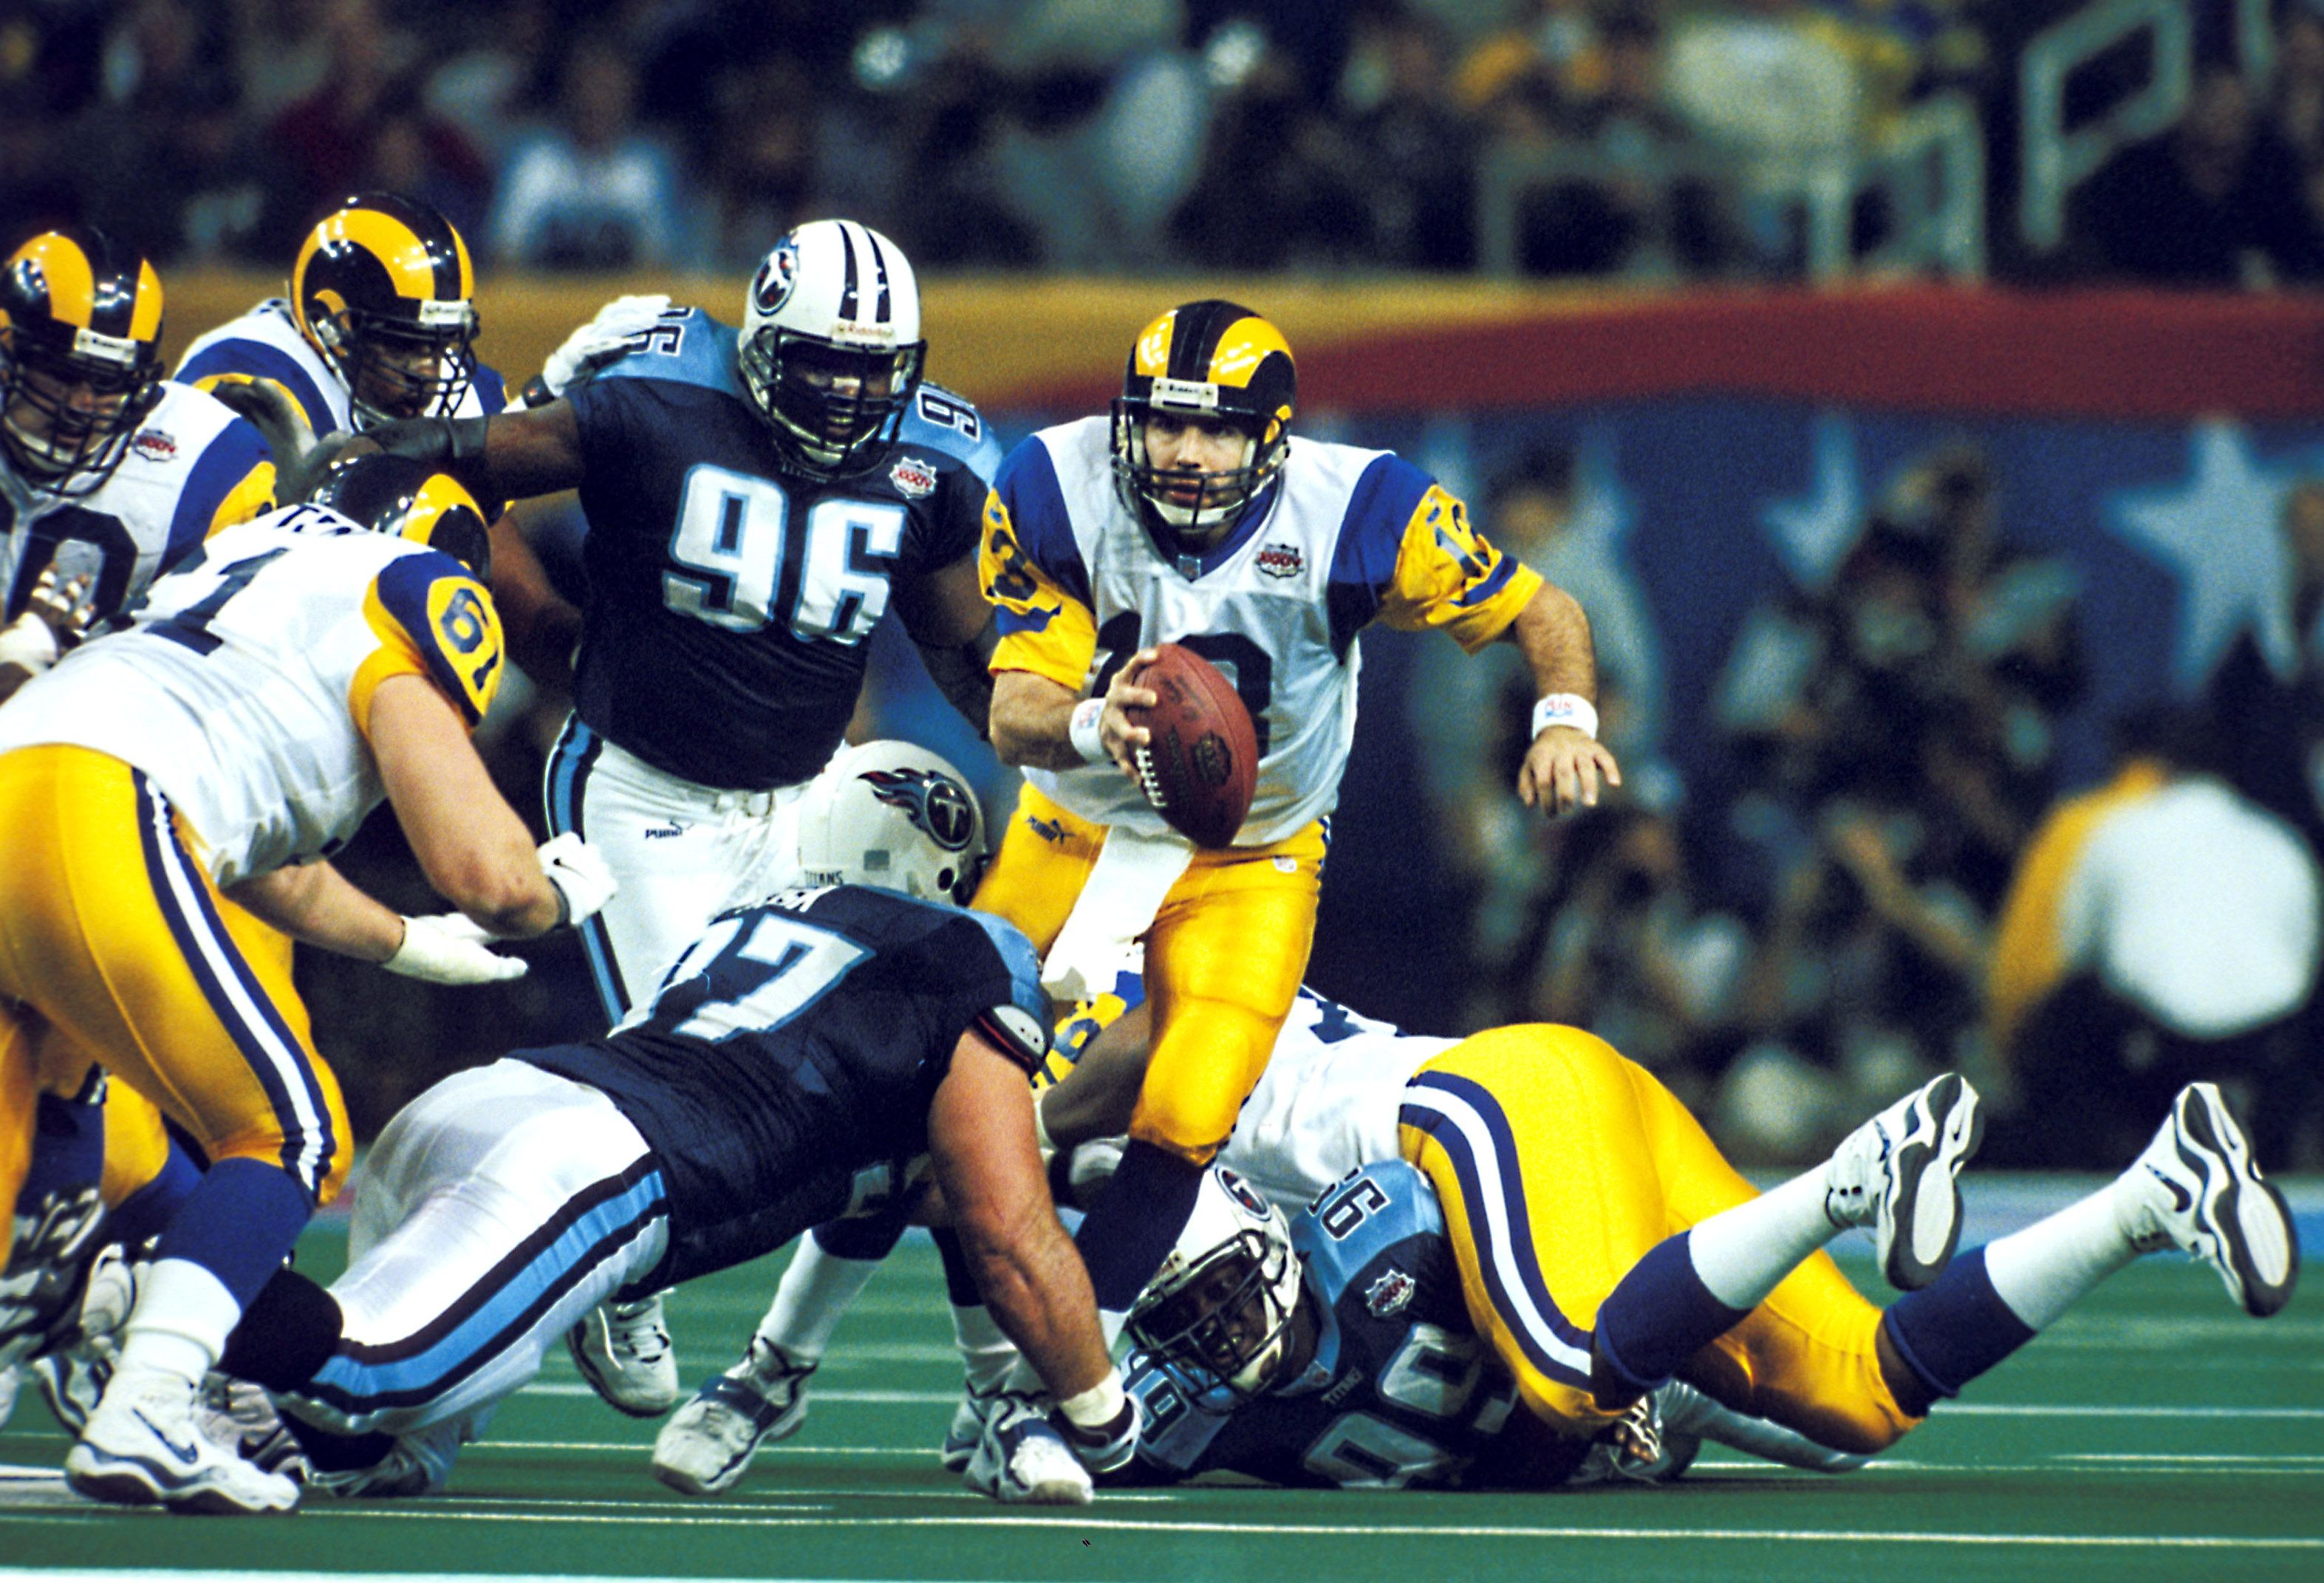 ebebe050c Kurt Warner led the St. Louis Rams to victory in Super Bowl XXXIV with 414  passing yards